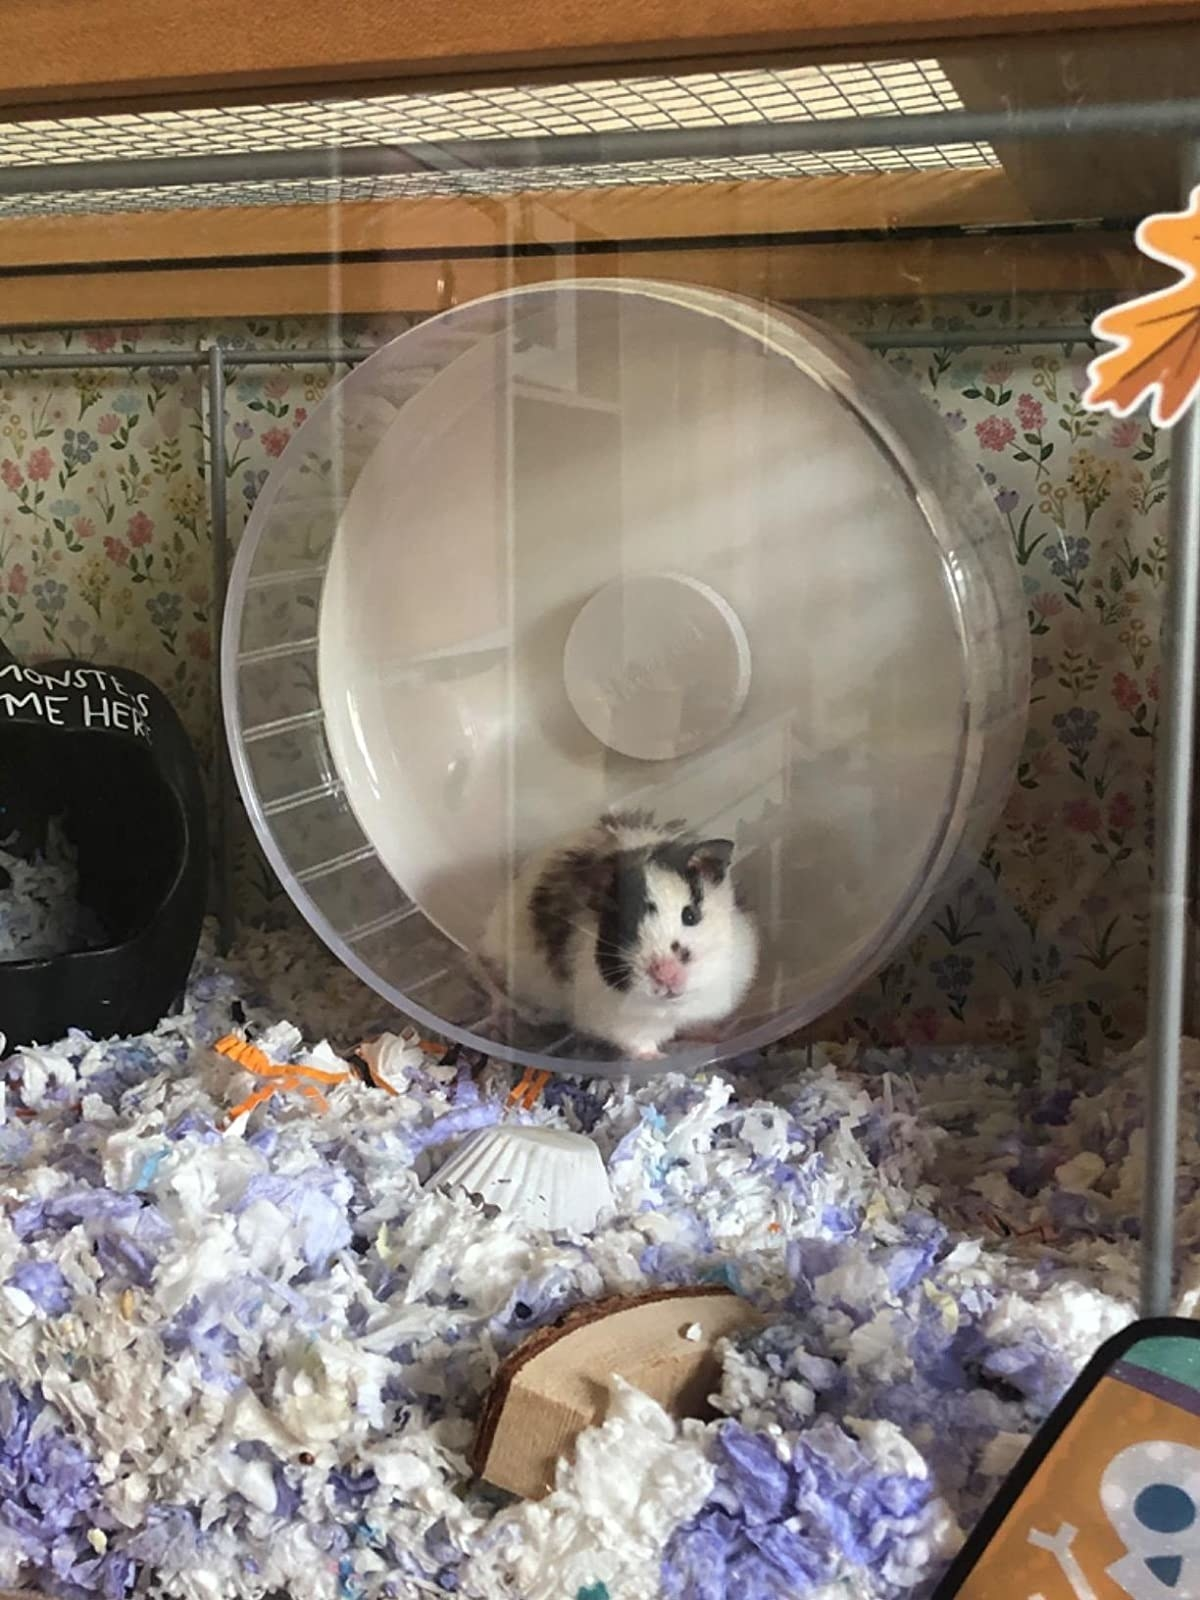 A reviewer's hamster using the acrylic wheel